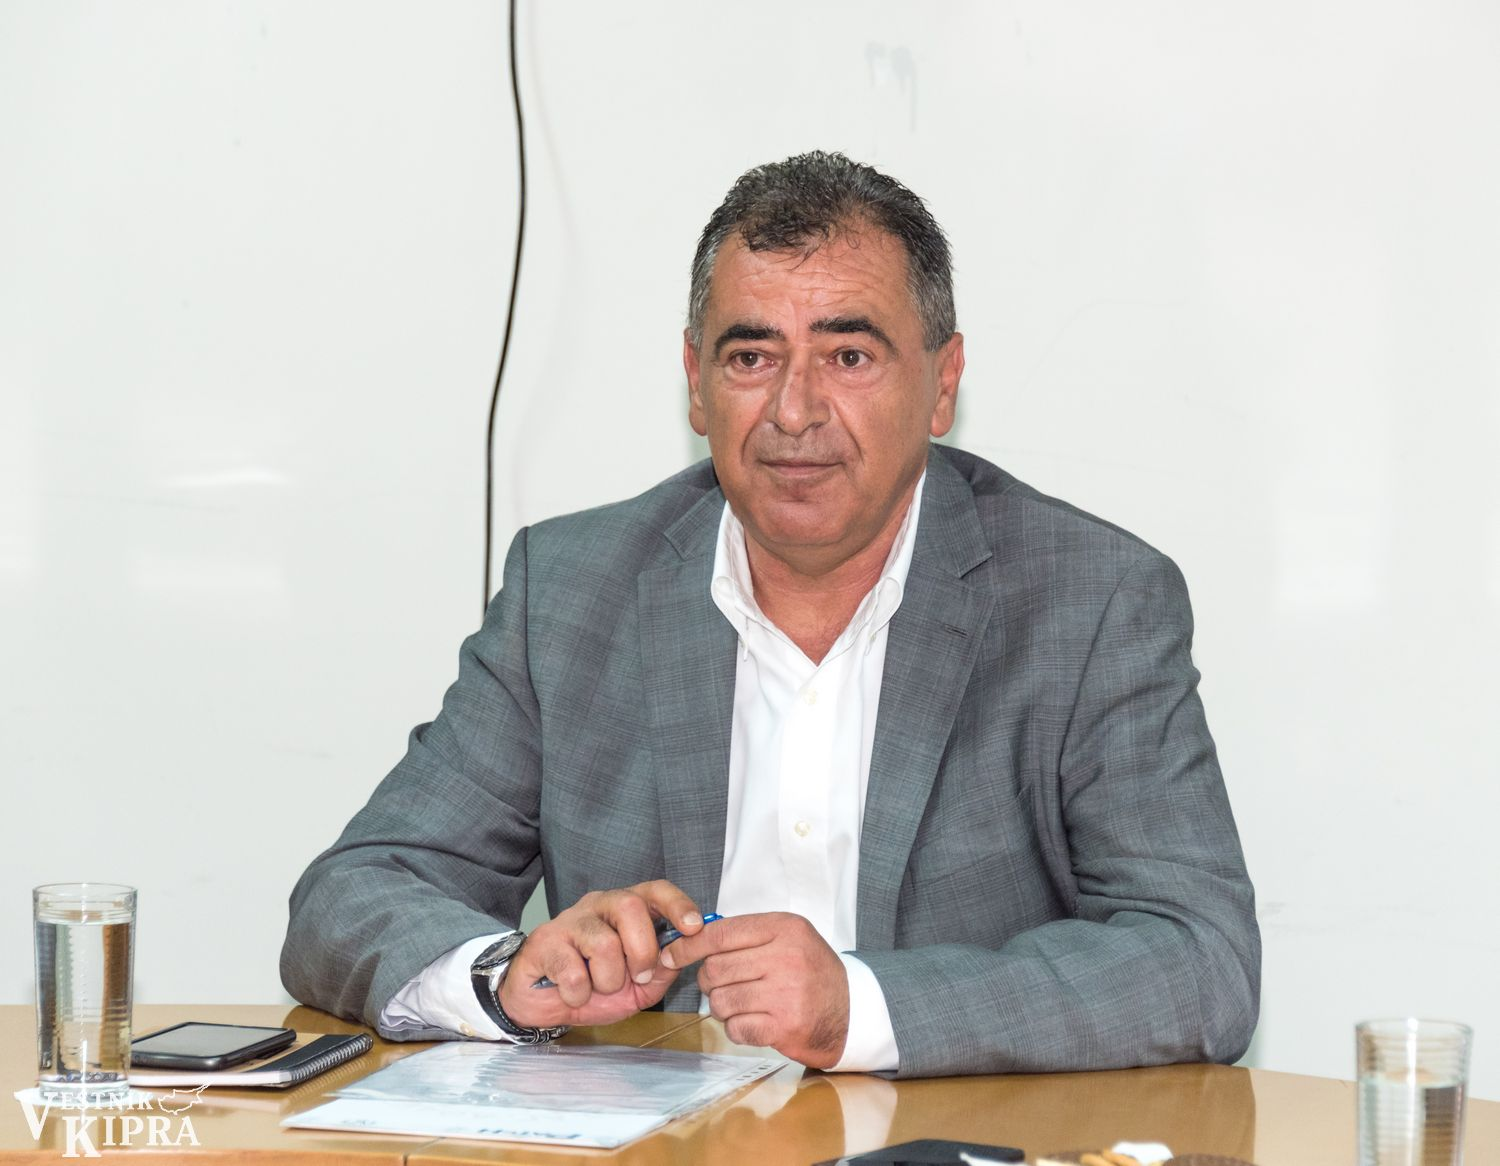 mayor agios athanasios meeting 2019 4